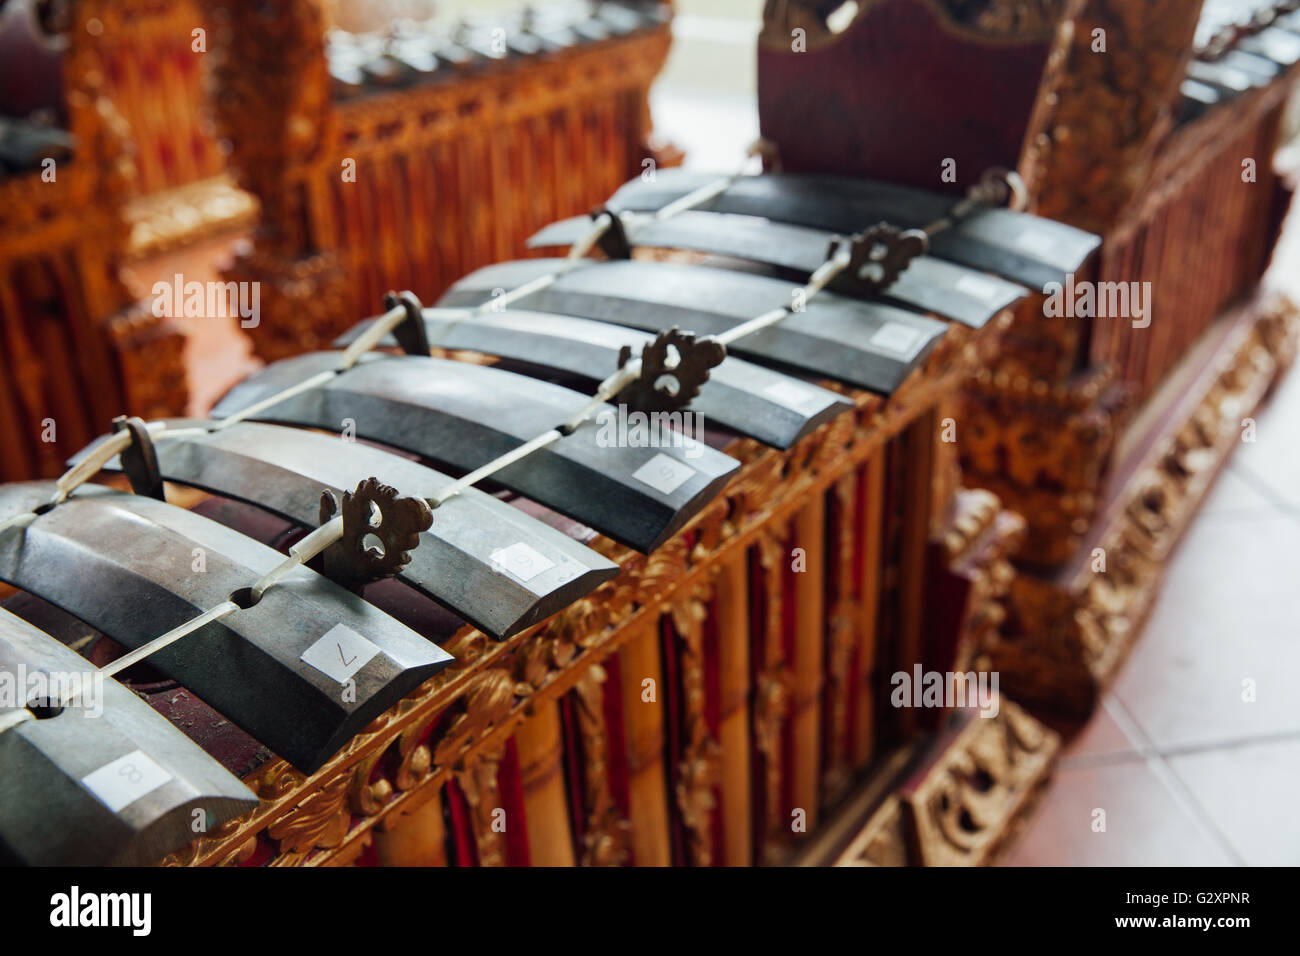 "Traditional balinese percussive music instruments instruments for ""Gamelan"" ensemble music, Ubud, Bali, Indonesia. Stock Photo"